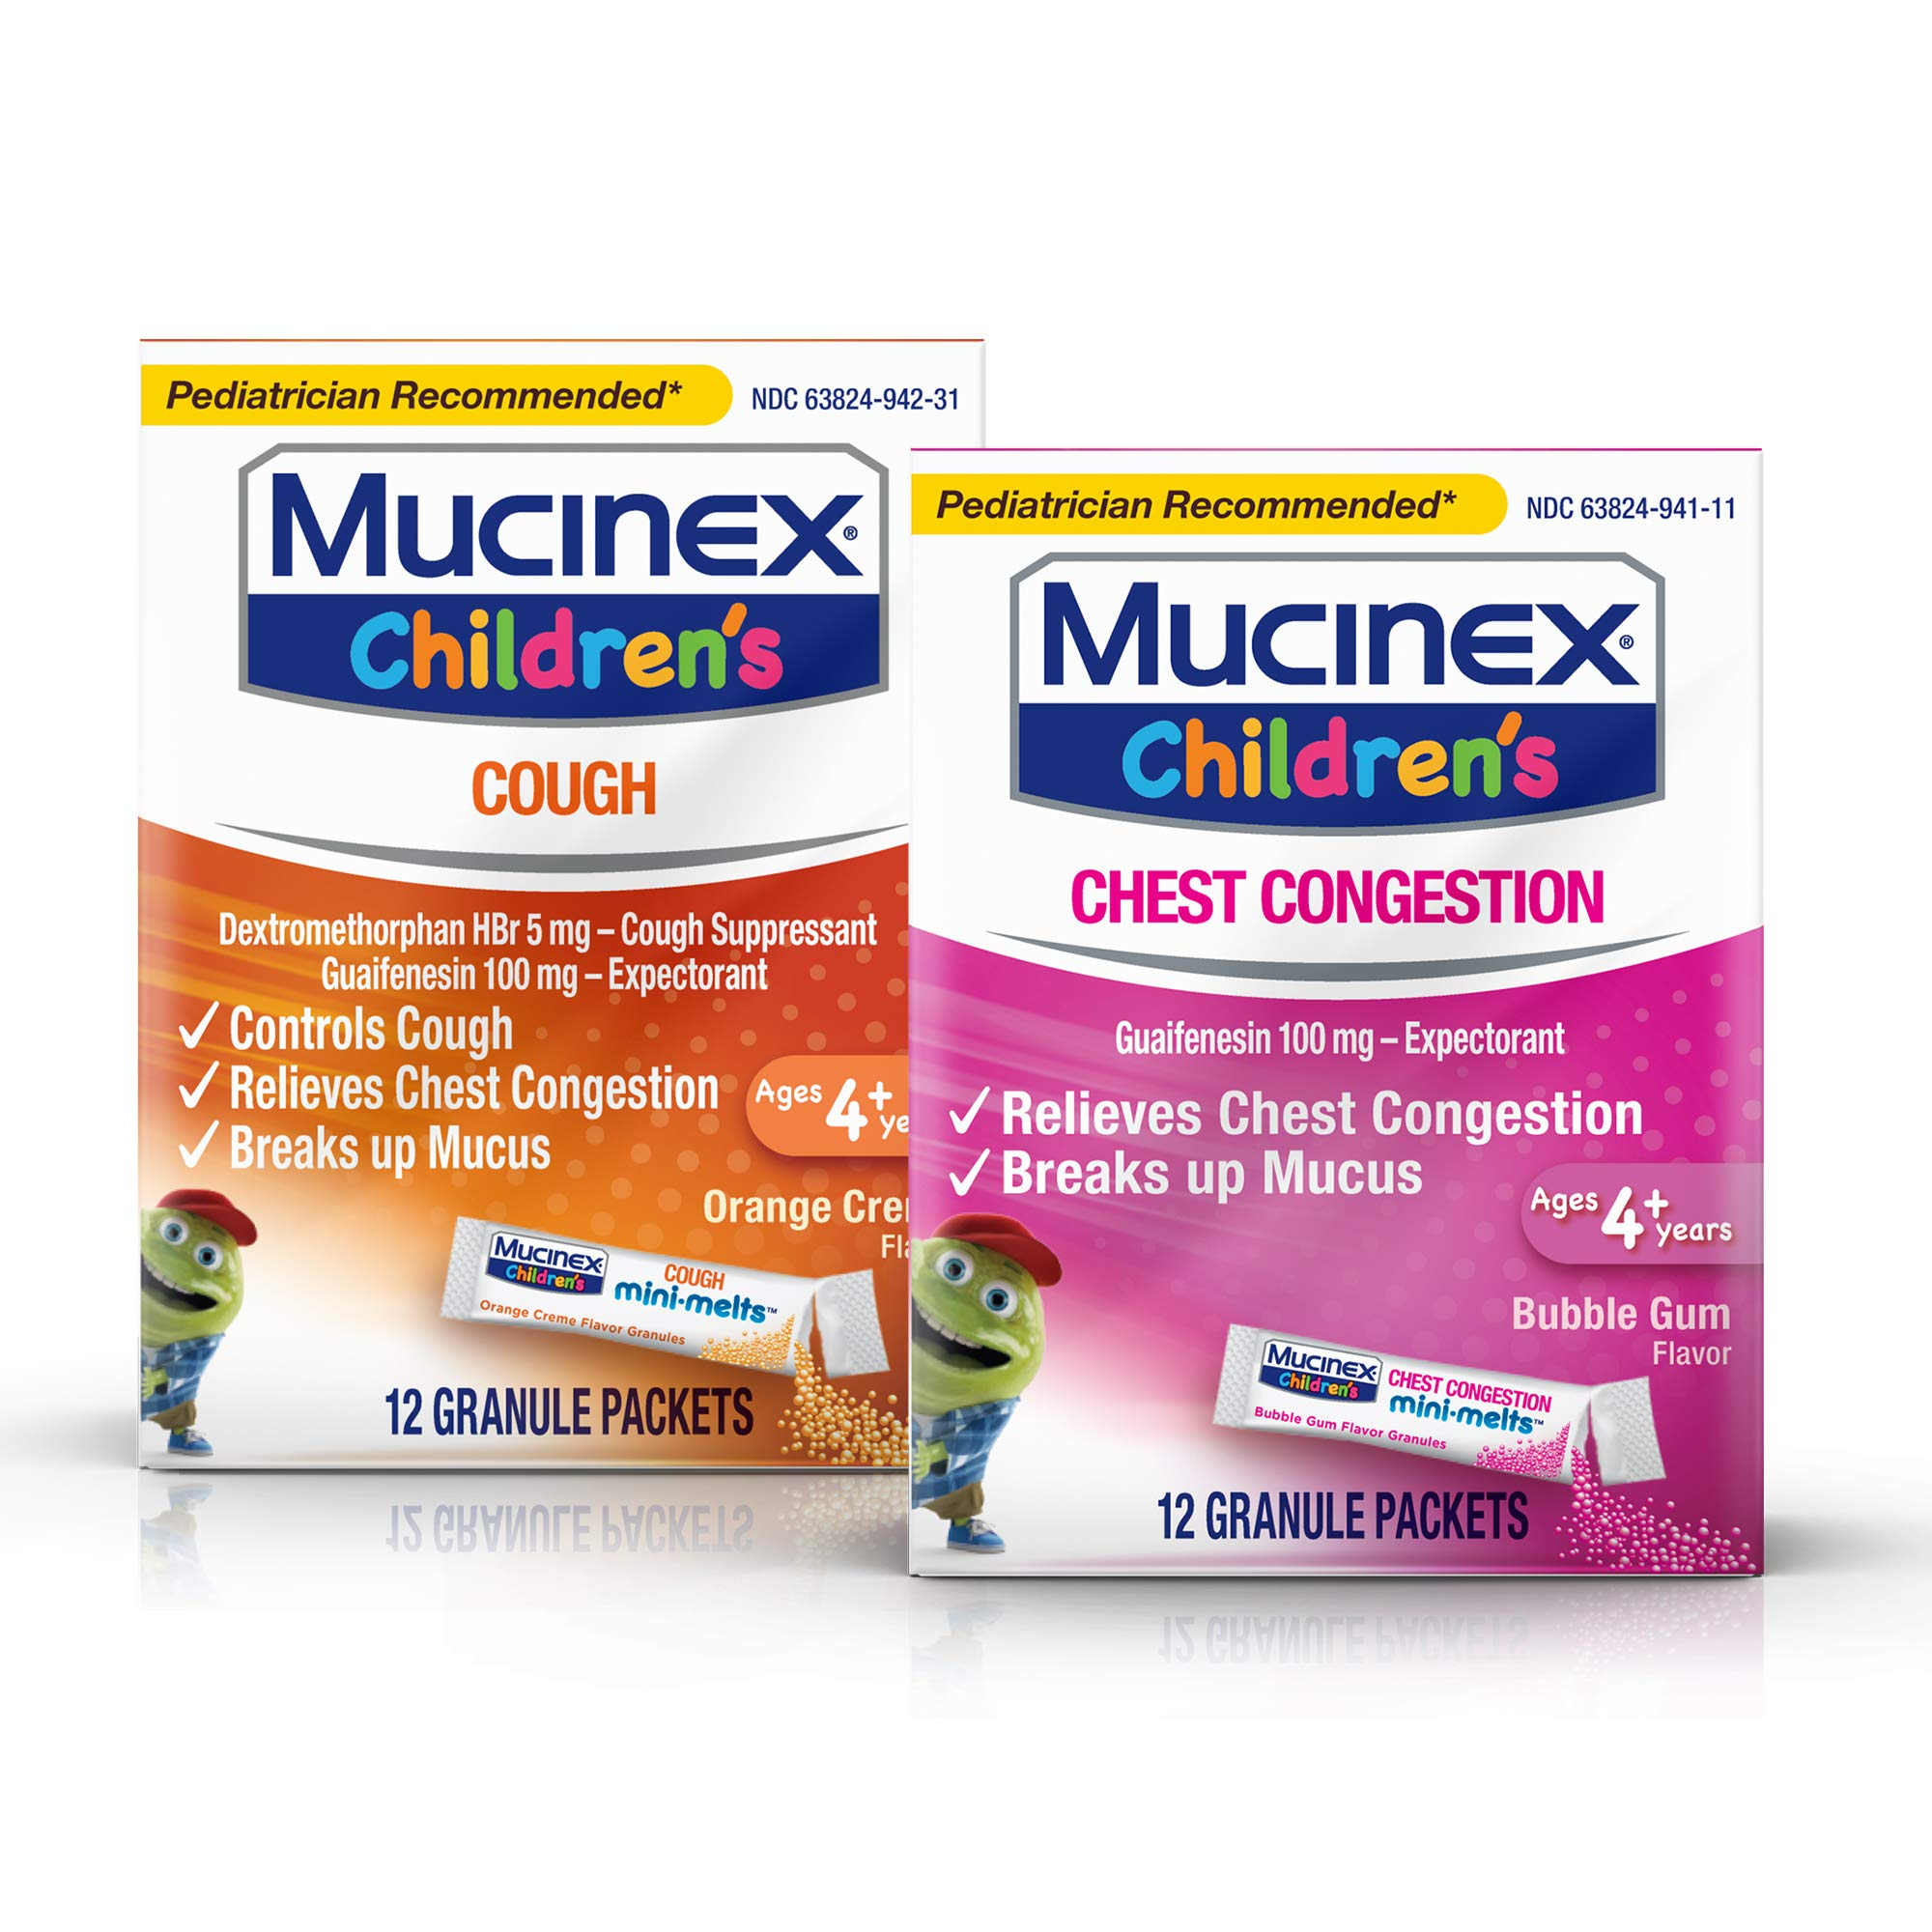 Mucinex Children's Mini Melts Chest Congestion Expectorant Bubble Gum 12 Ct & Cough Suppressant Orange Creme 12 Ct Packets, 1 Ea (Packaging May Vary) by Mucinex